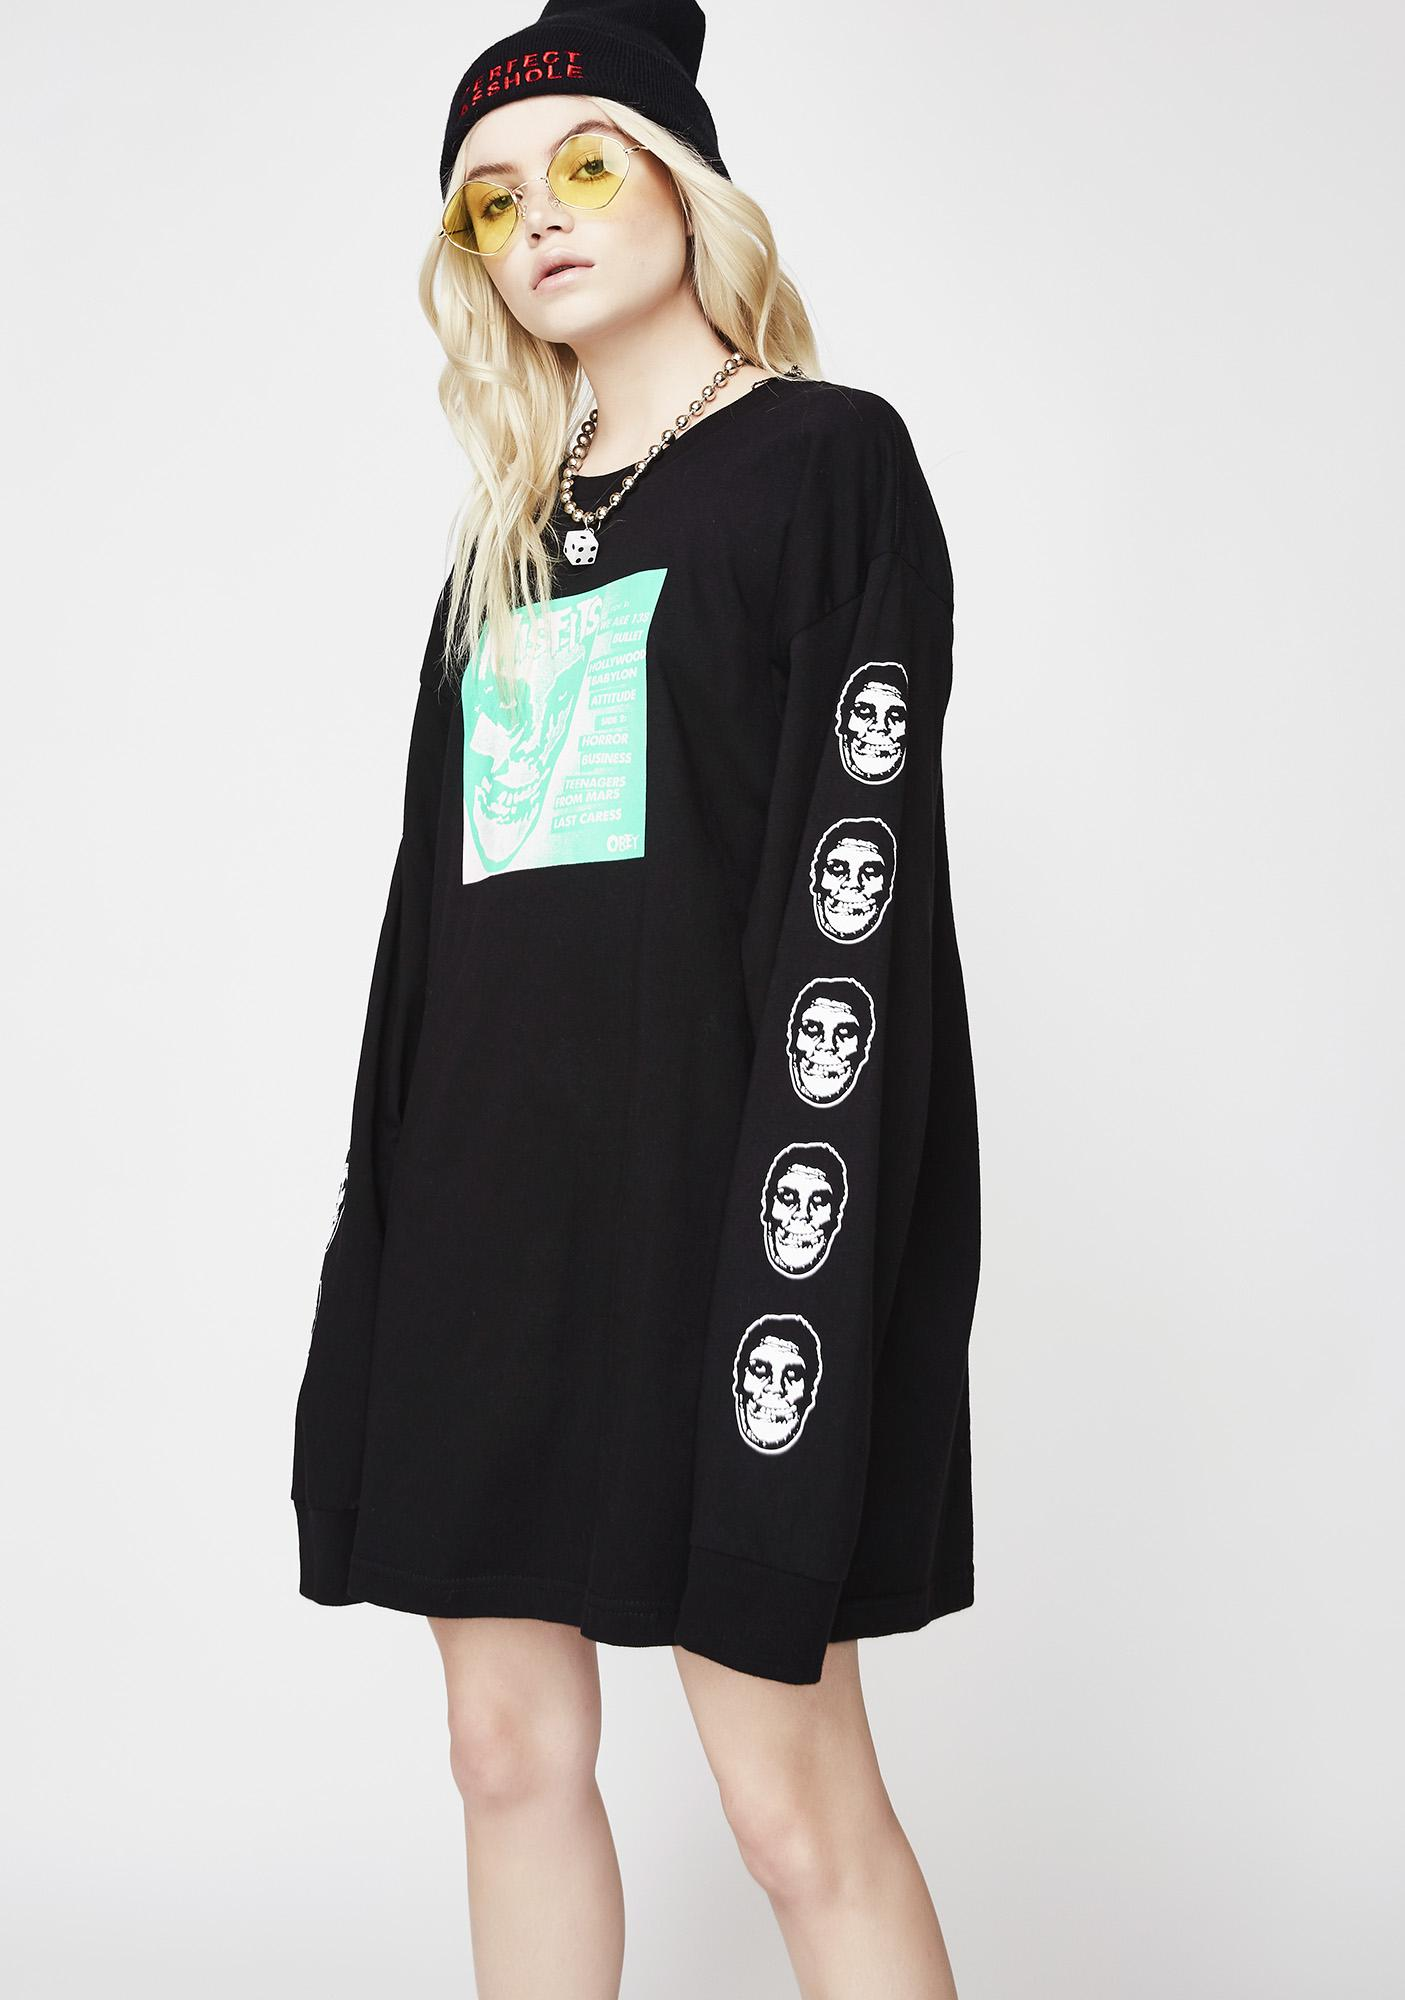 Obey x Misfits Long Sleeve Tee